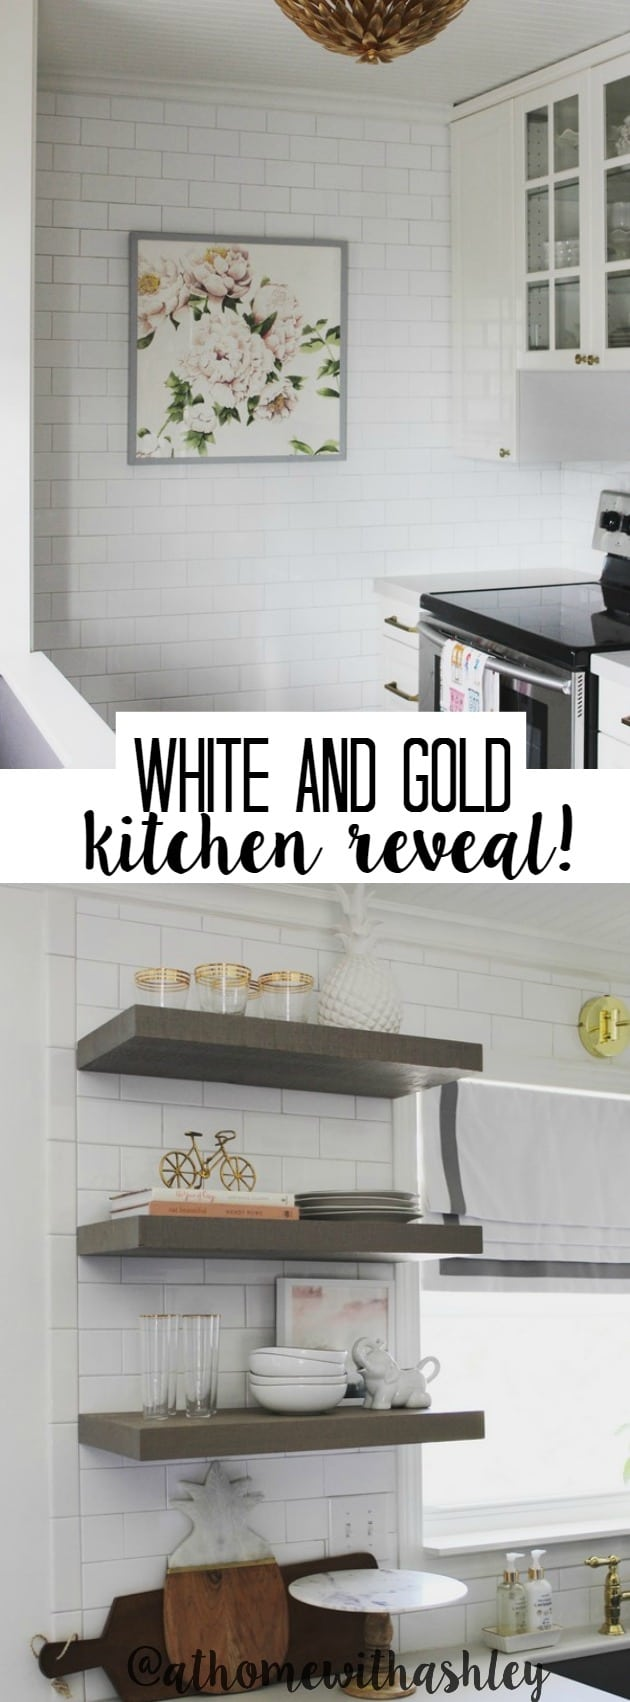 Kitchen Reveal! - at home with Ashley